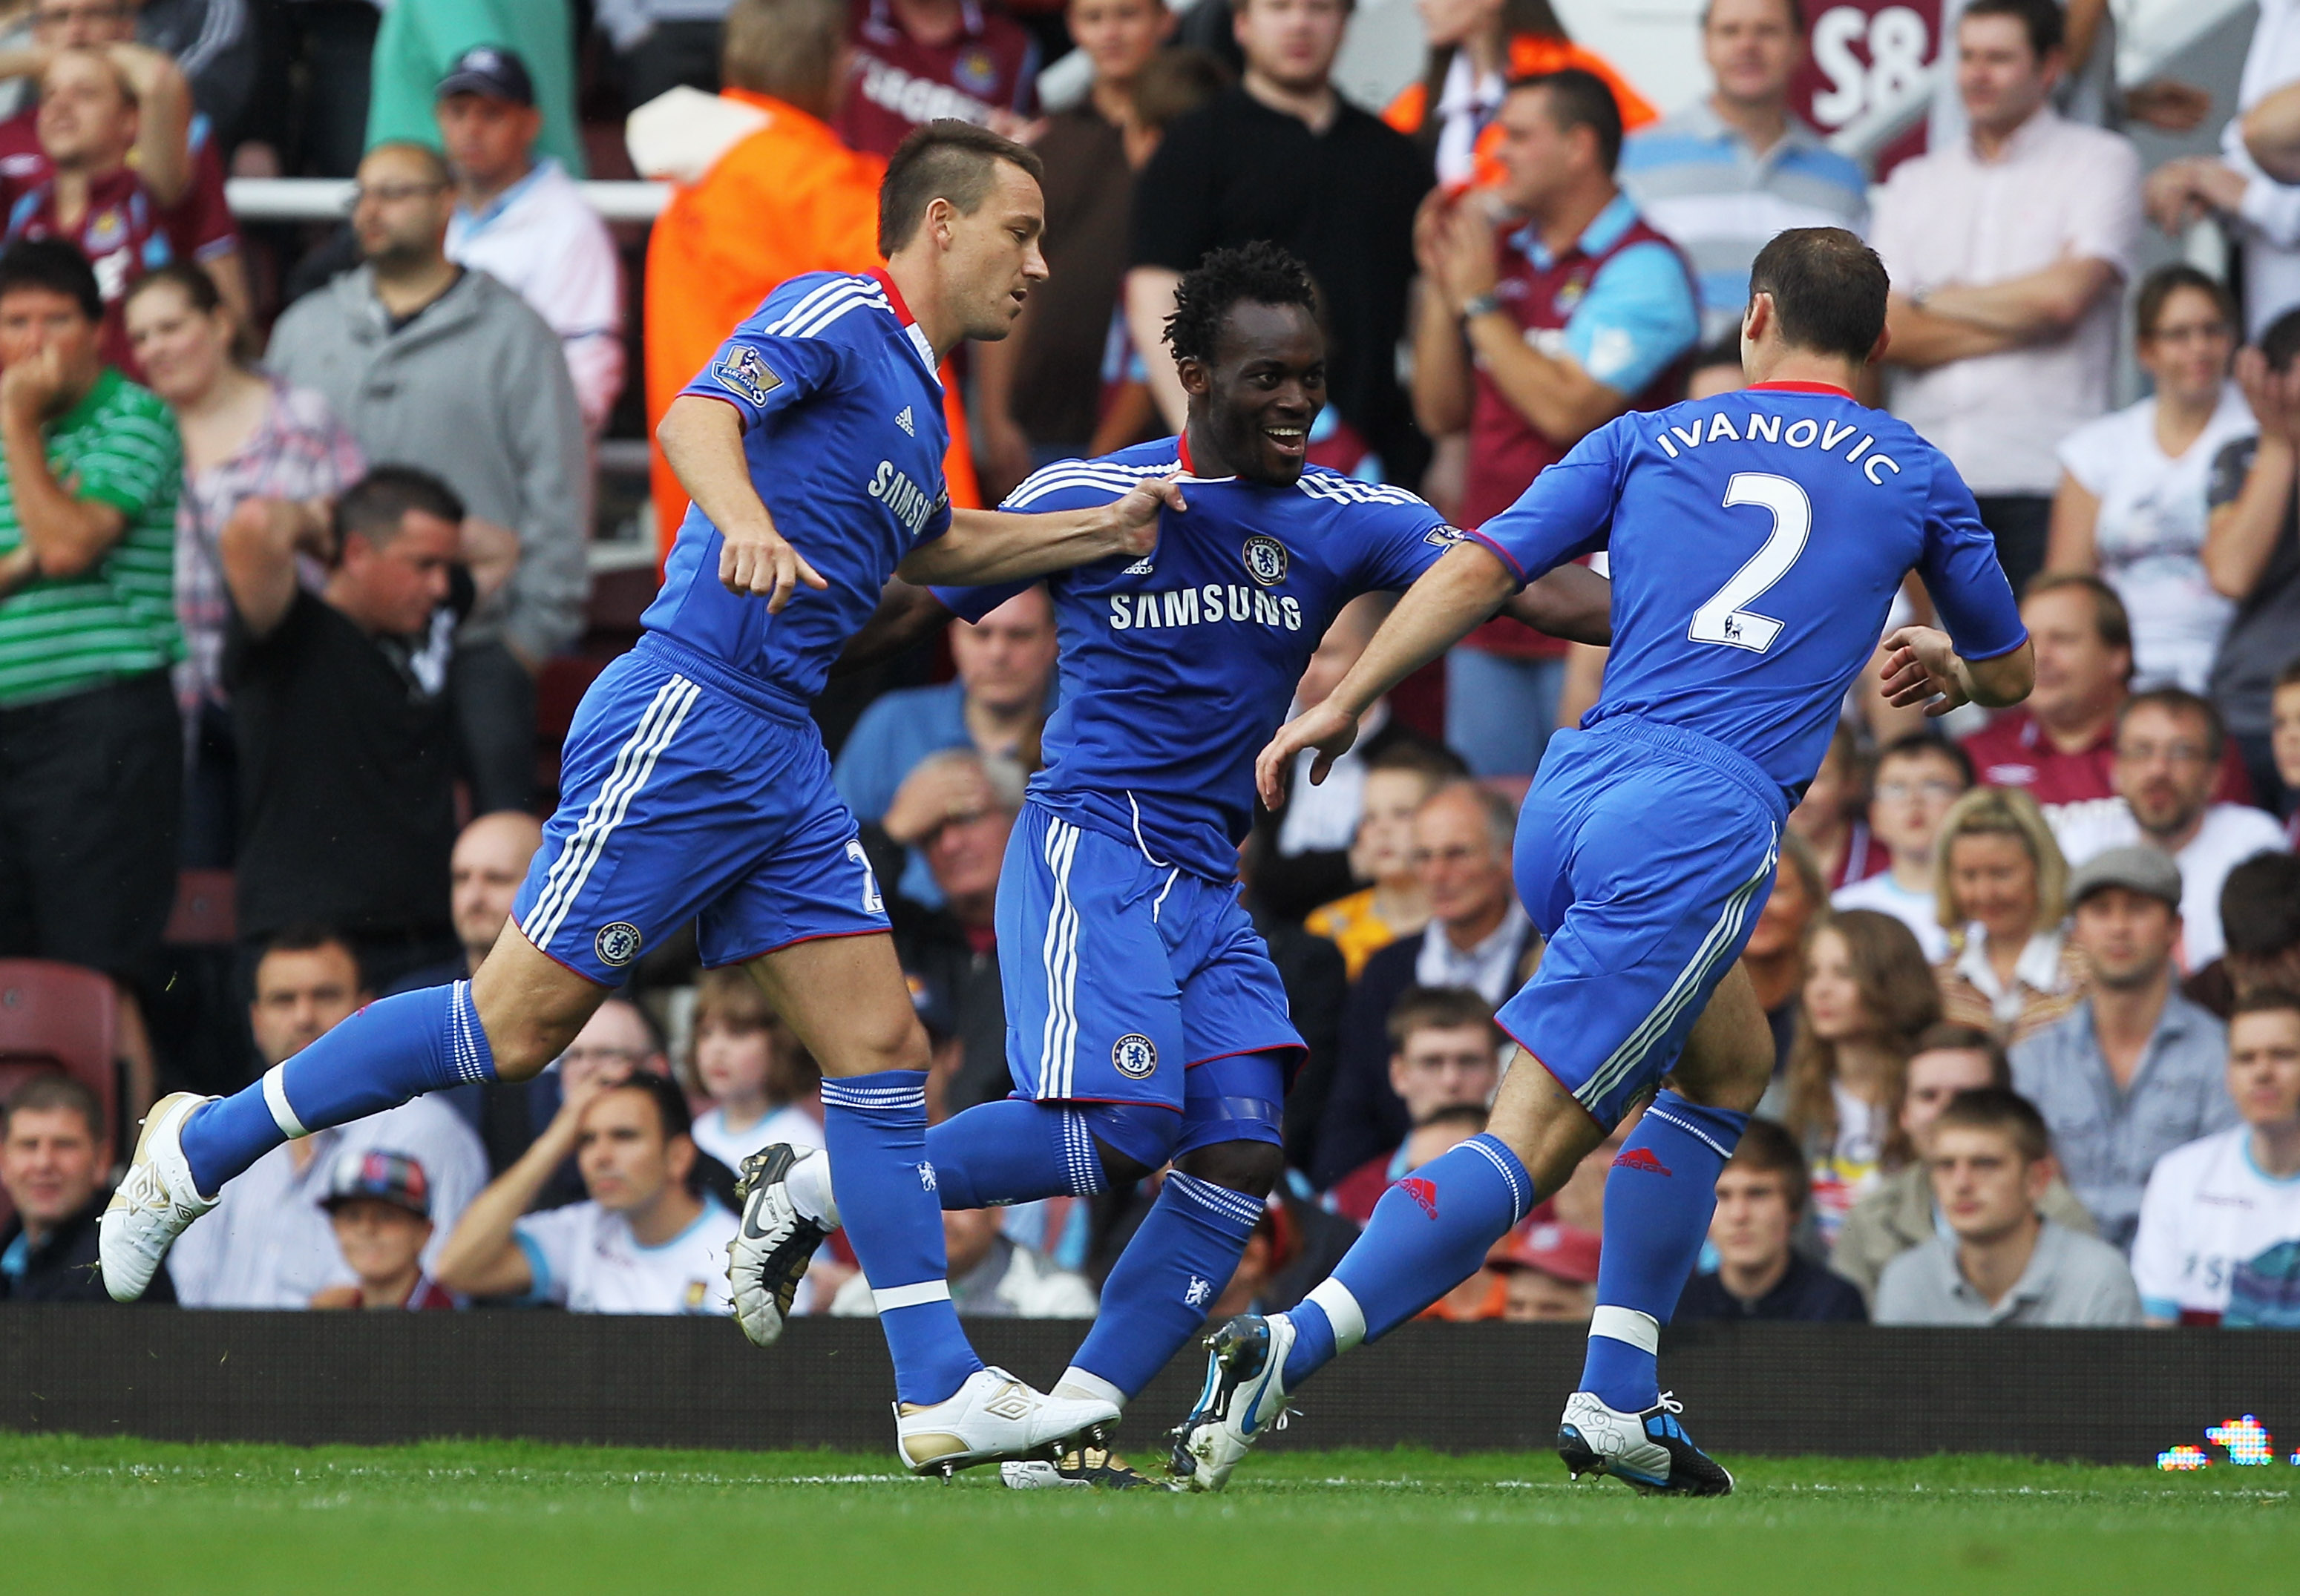 LONDON, ENGLAND - SEPTEMBER 11:  Michael Essien of Chelsea (C) celebrates with John Terry (L) and Branislav Ivanovic as he scores their first goal during the Barclays Premier League match between West Ham United and Chelsea at the Boleyn Ground on Septemb